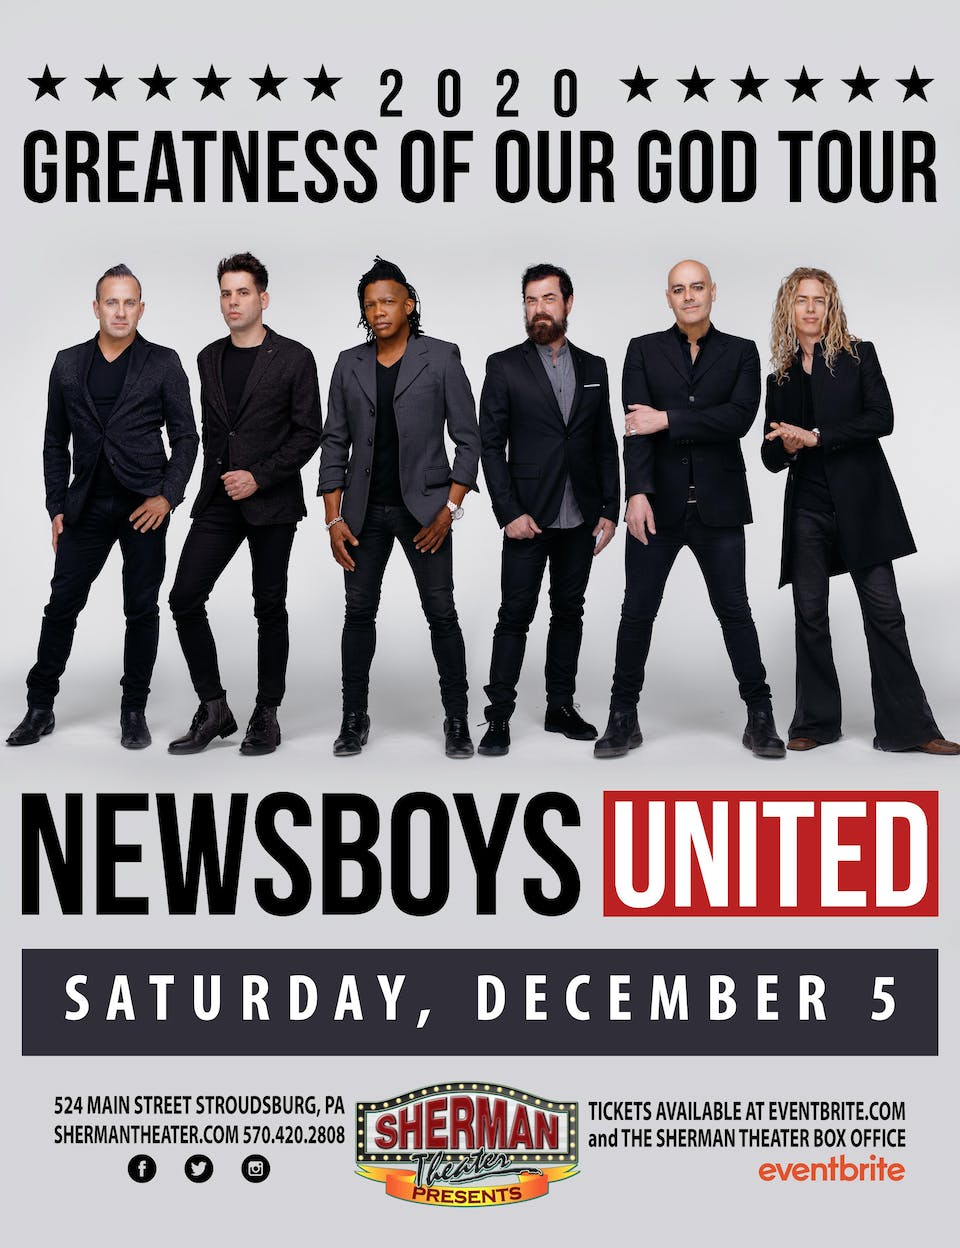 *MARCH 13th DATE* Newsboys UNITED - Greatness Of Our God Tour